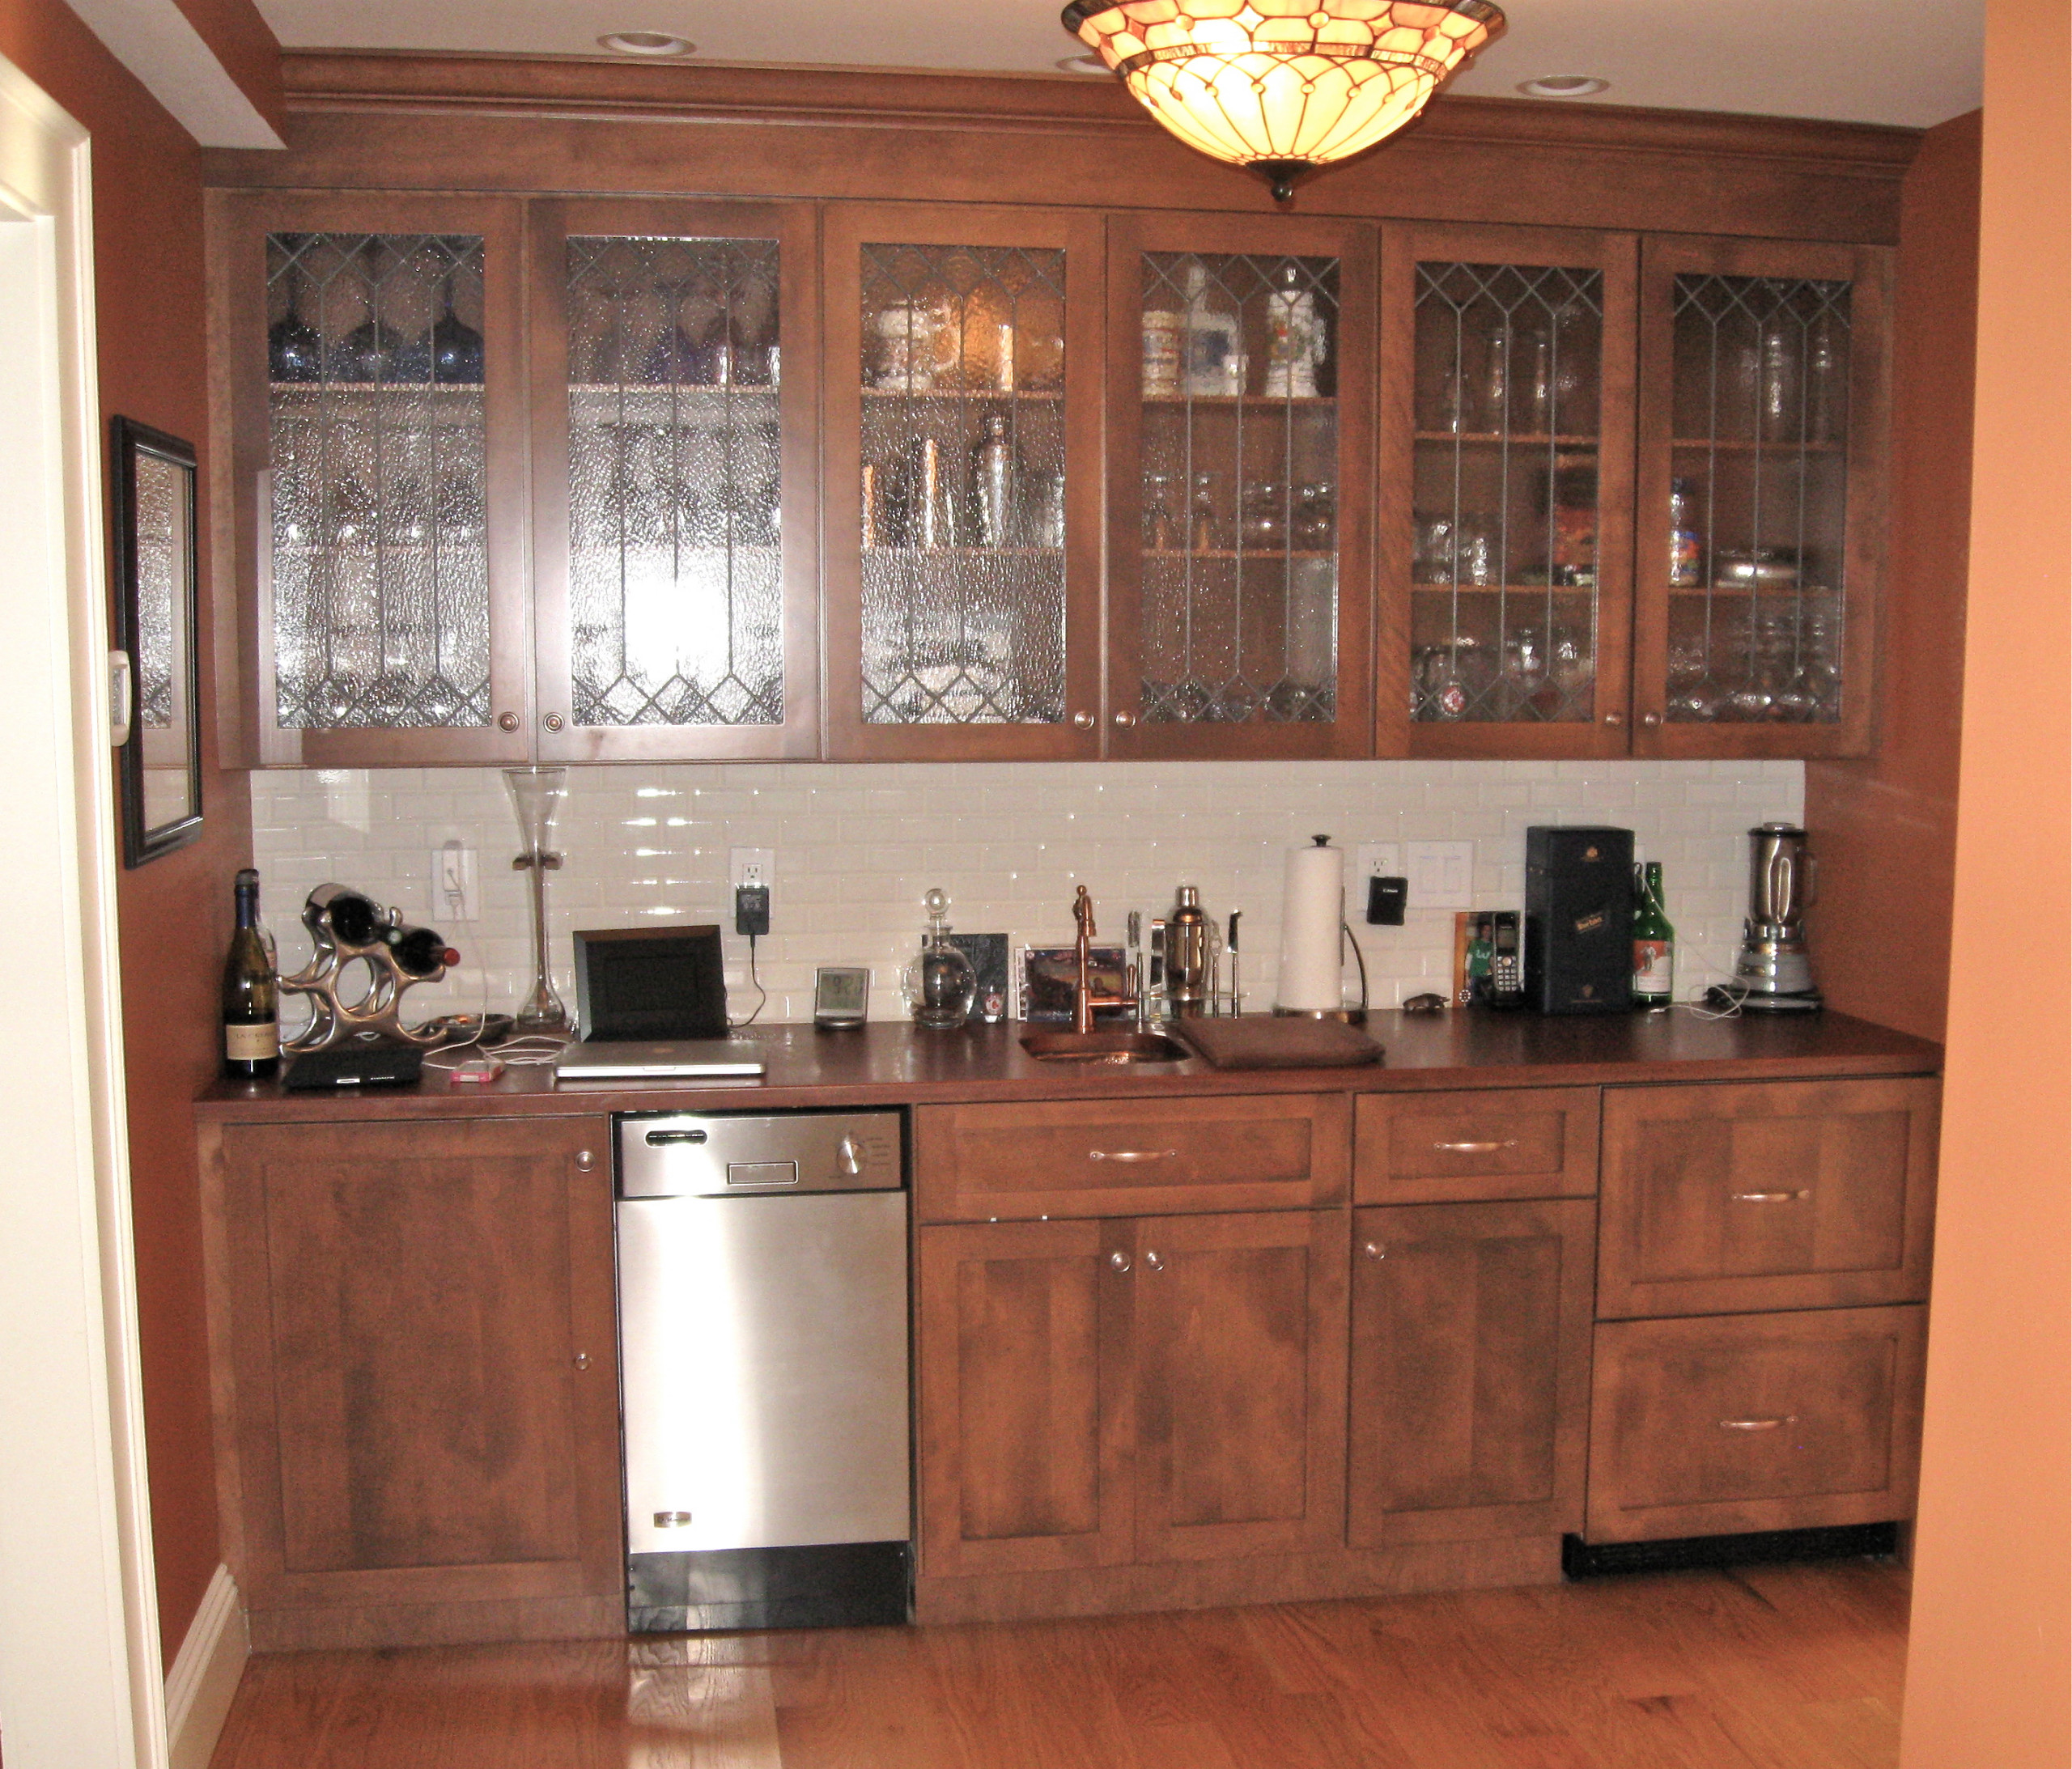 15 White Oak, Newton, MA - Kitchen Addition